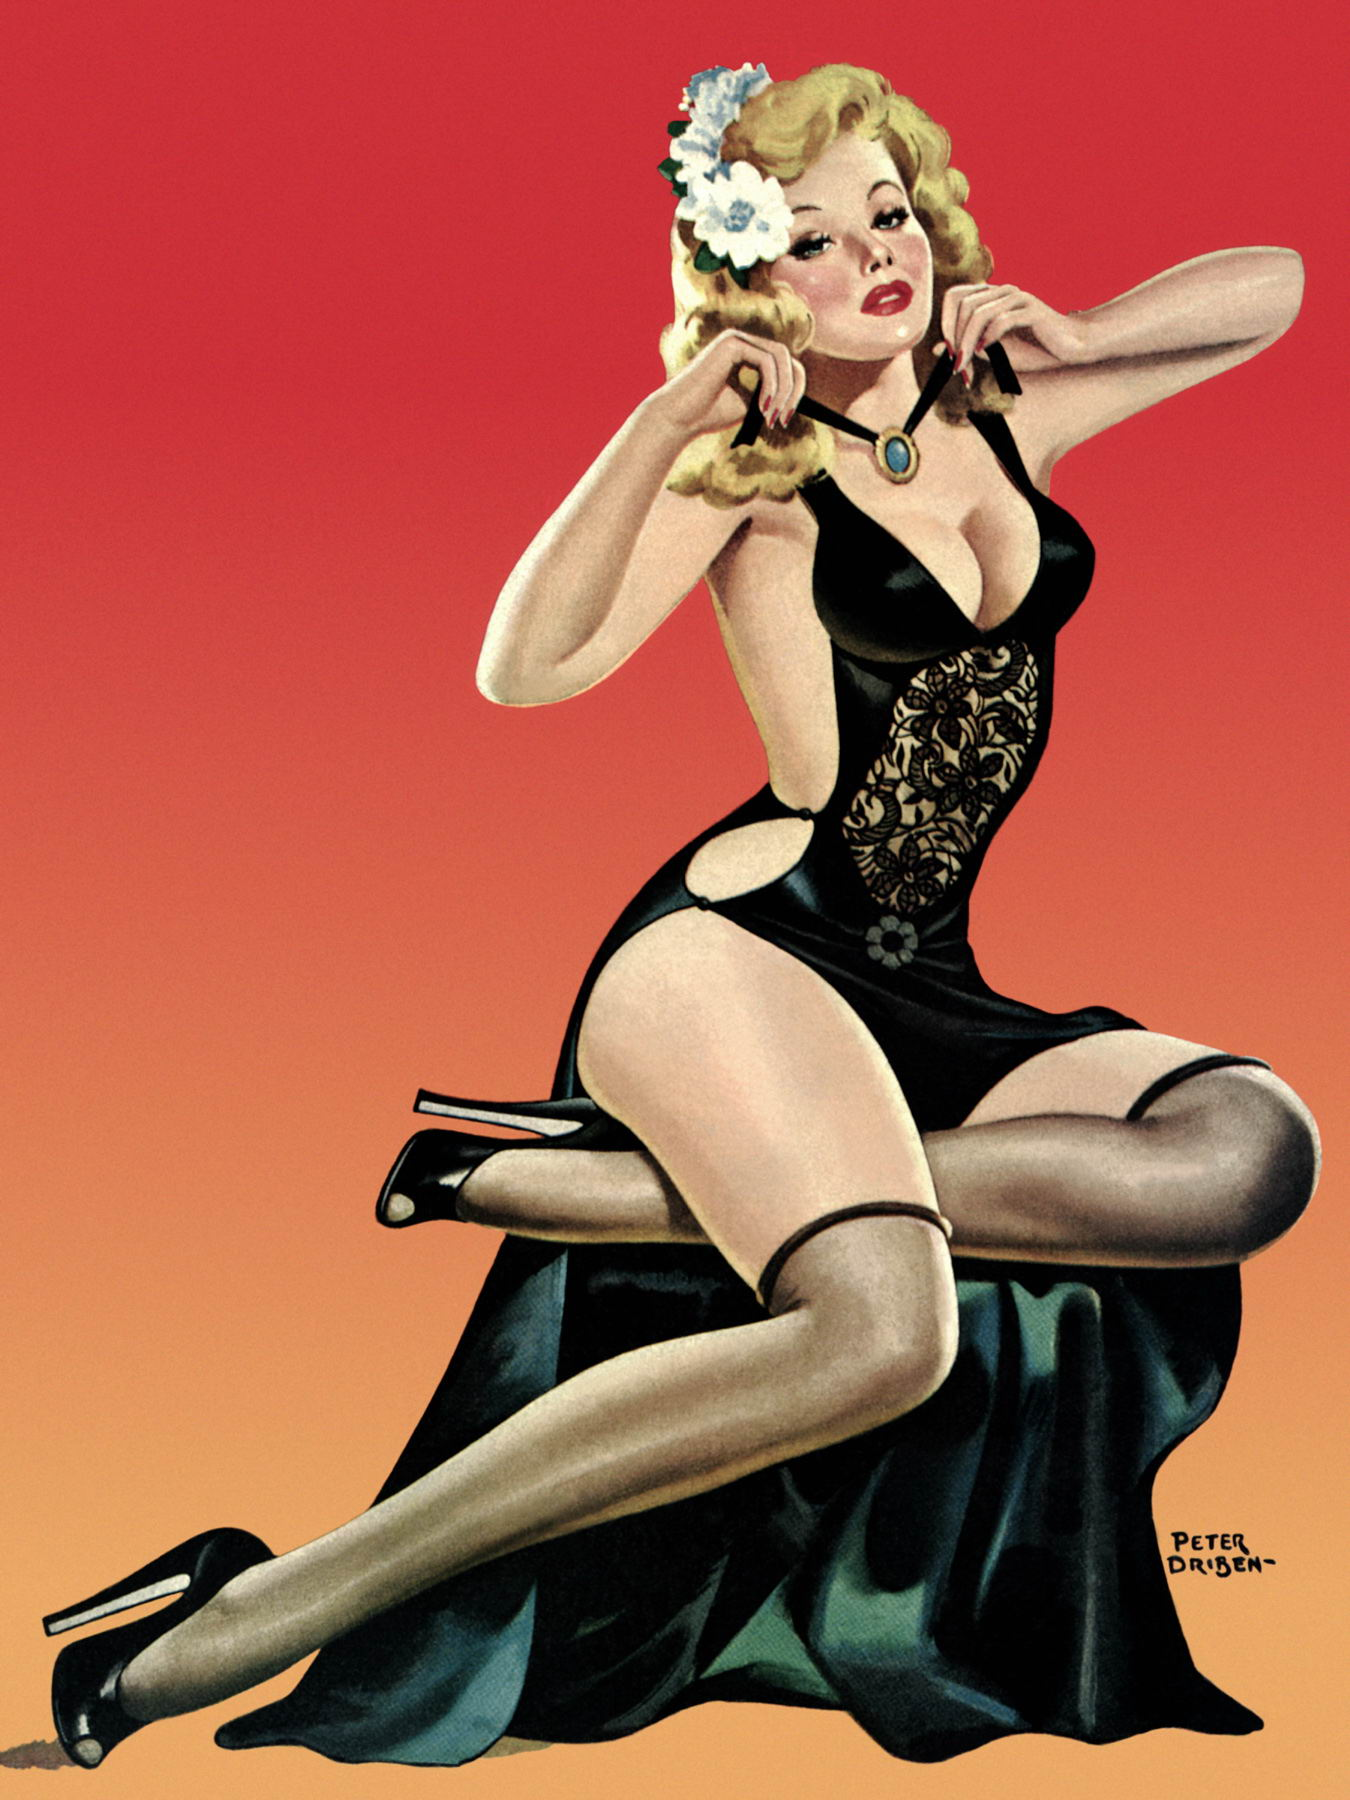 85 Drawn Pin-Up Girls Of The 40-50s